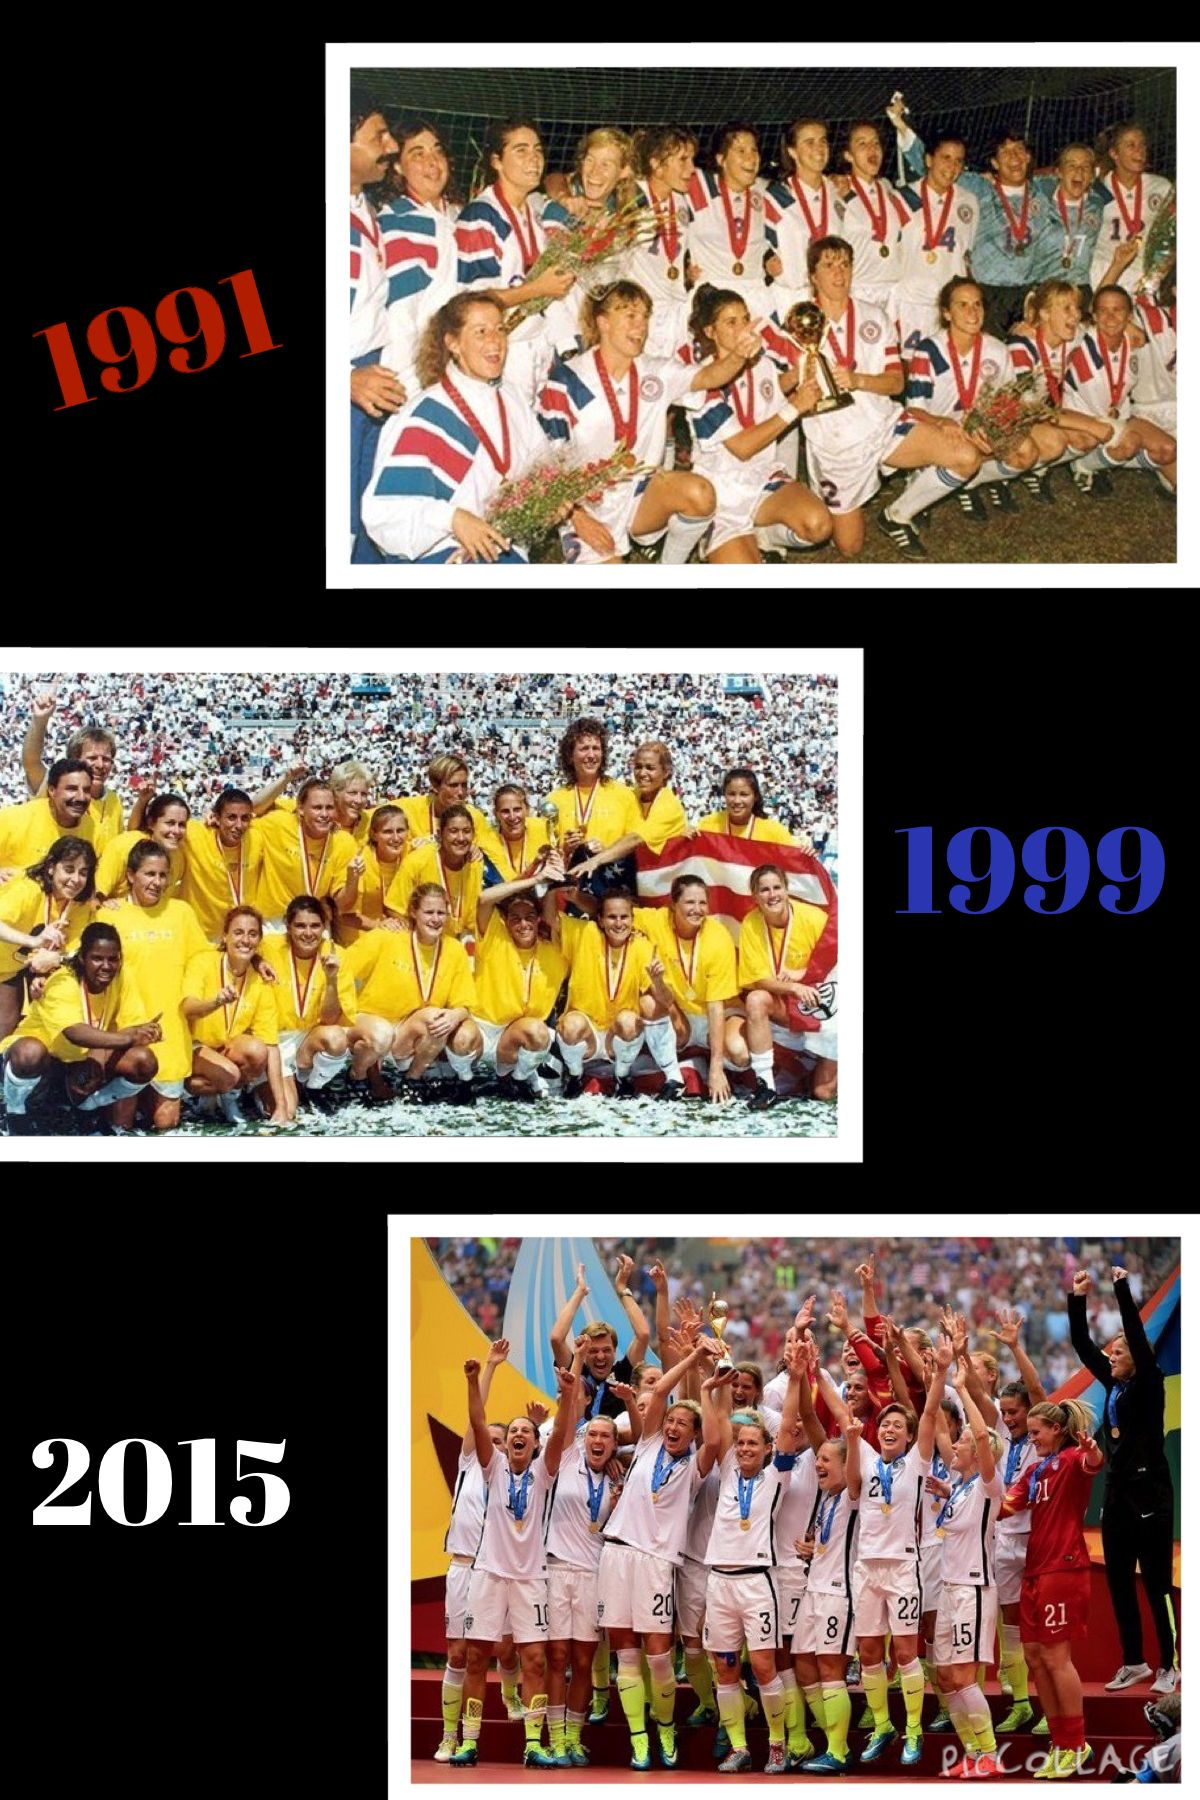 1991 1999 2015 Usa Women S World Cup Champions One Nation One Team Win Like The Uswnt Uswnt World Cup Champions One Team